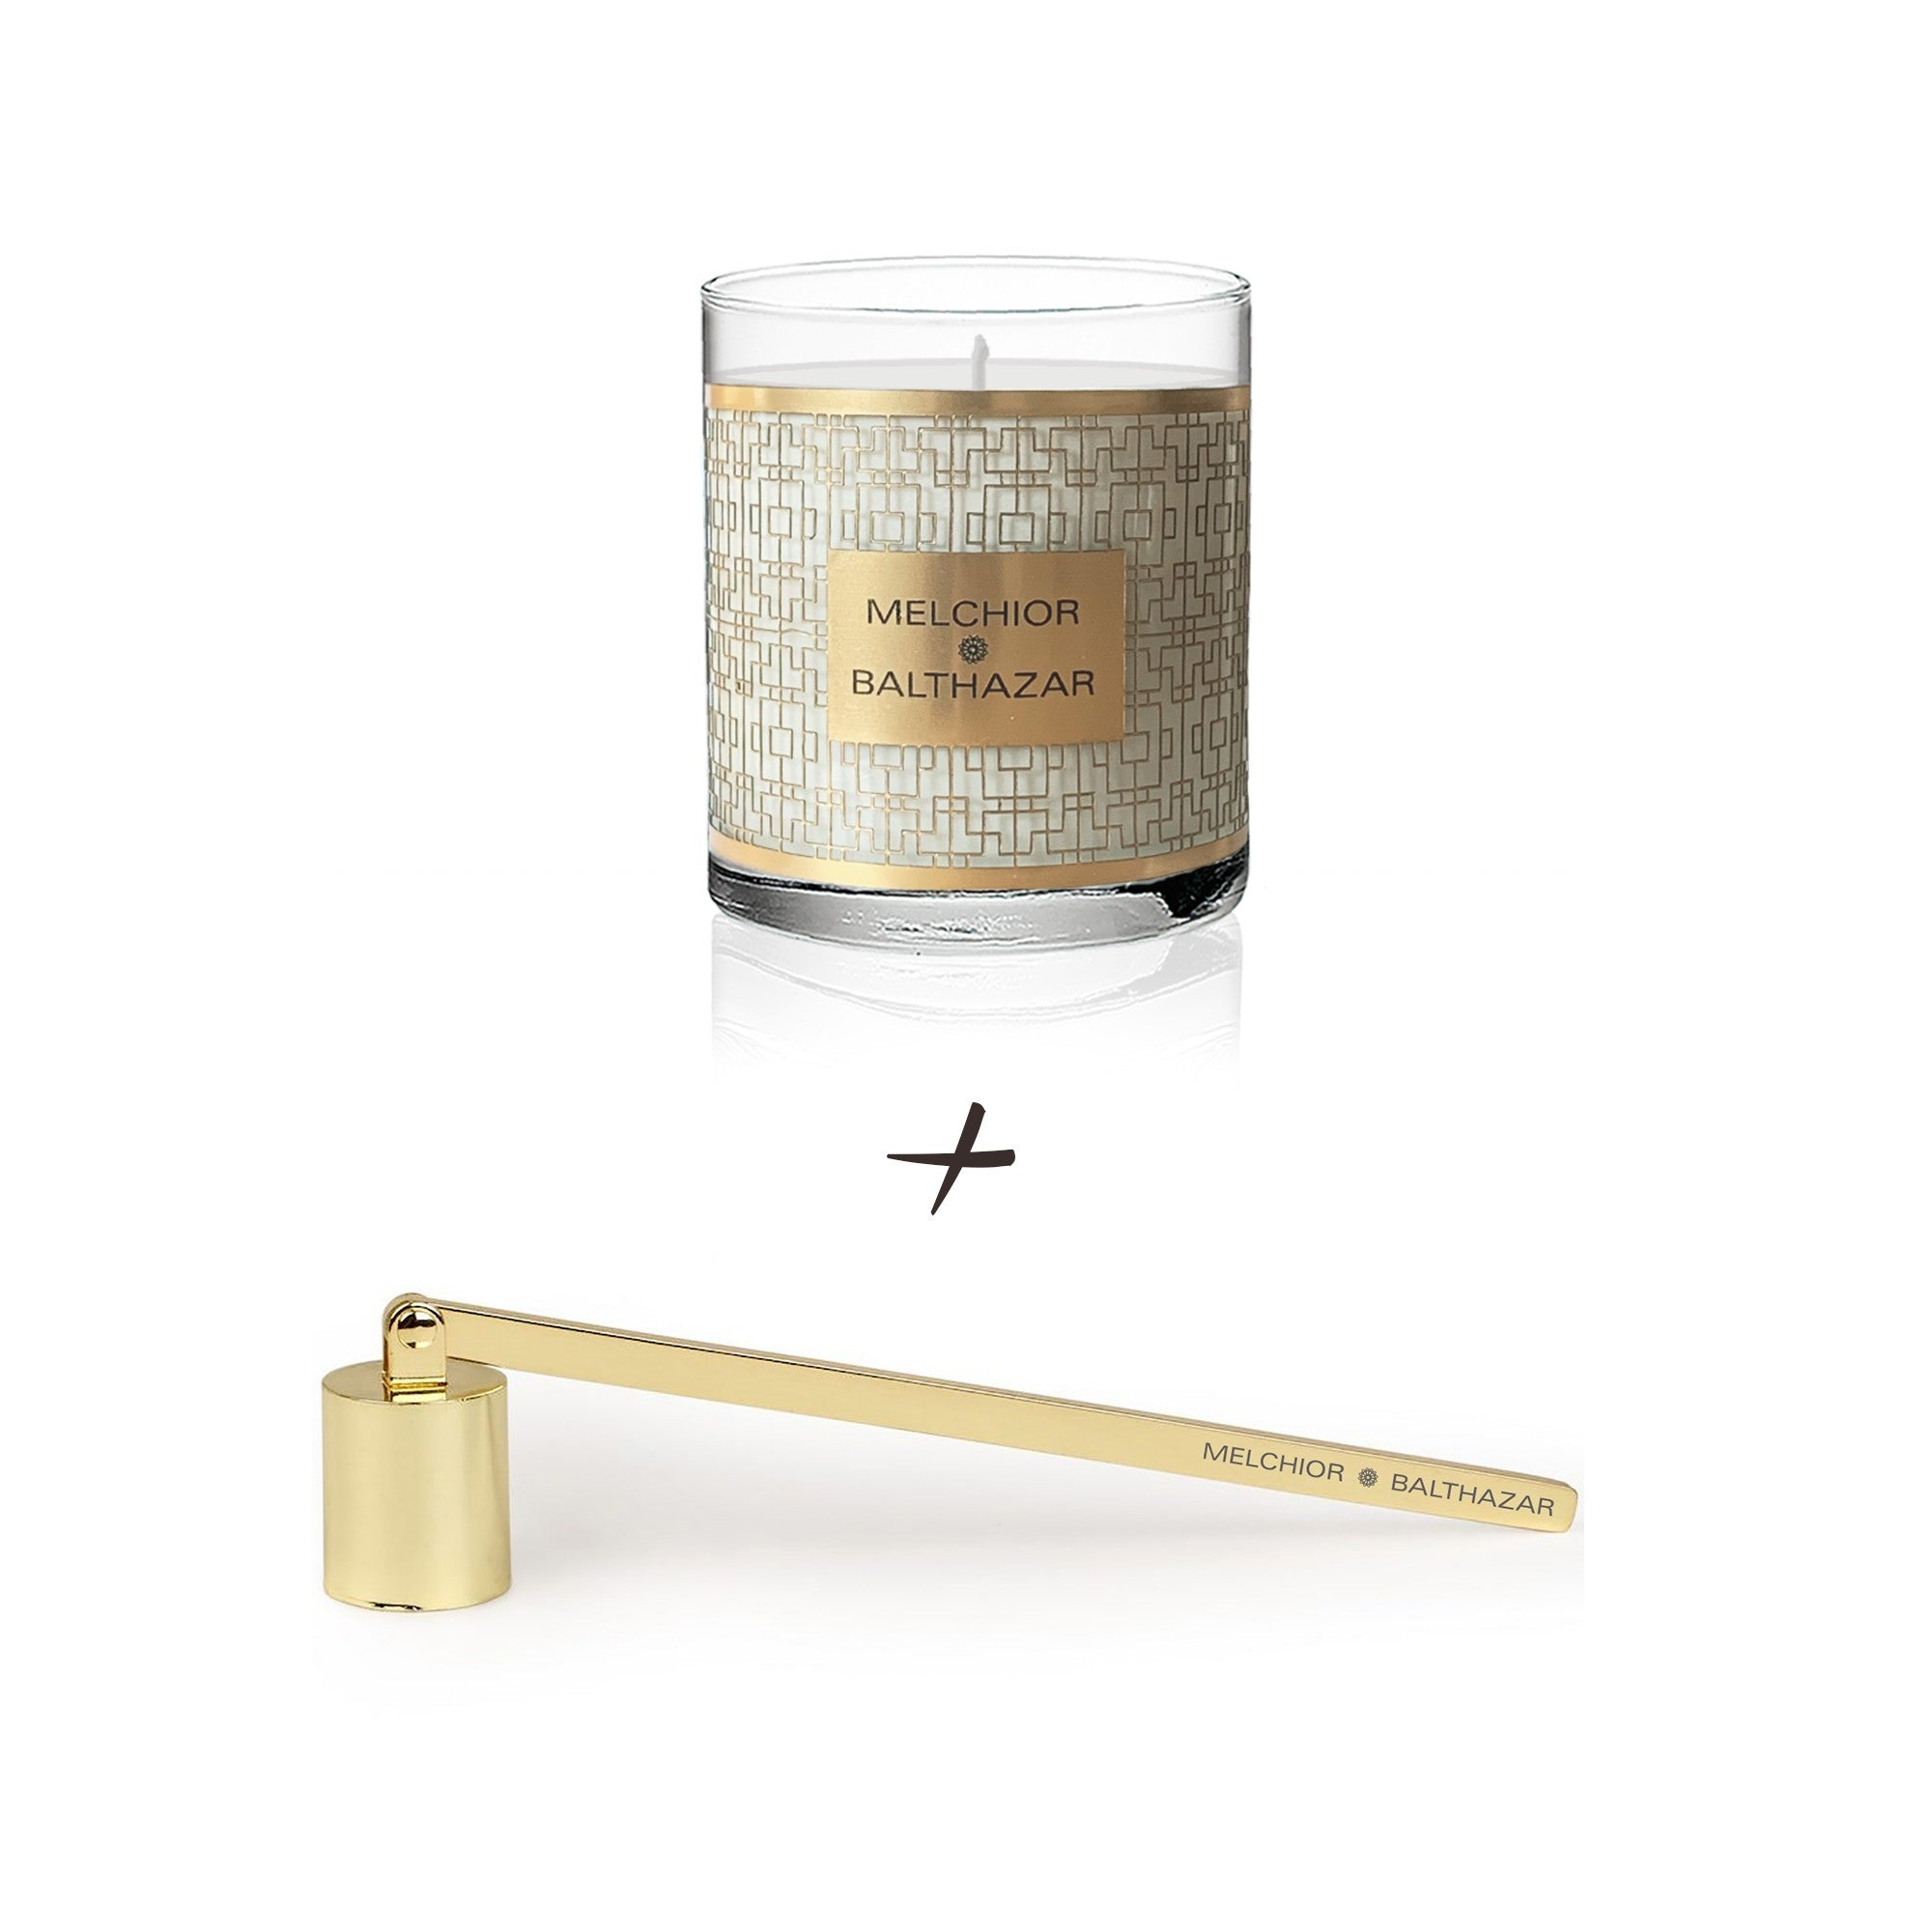 Candle and Accessory Duo Melchior & Balthazar